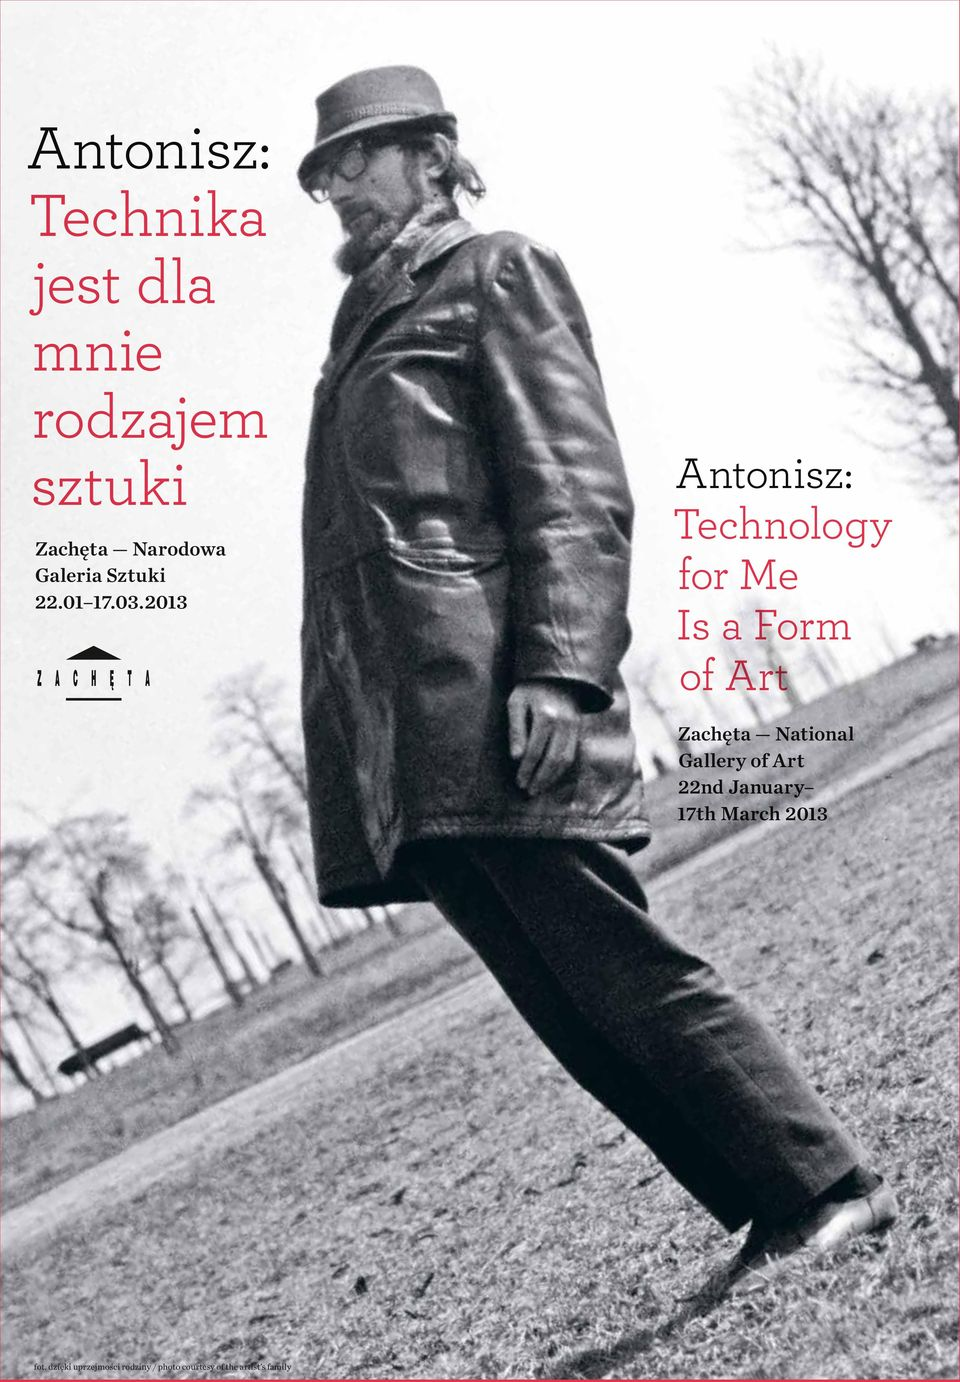 2013 Antonisz: Technology for Me Is a Form of Art Zachęta National Gallery of